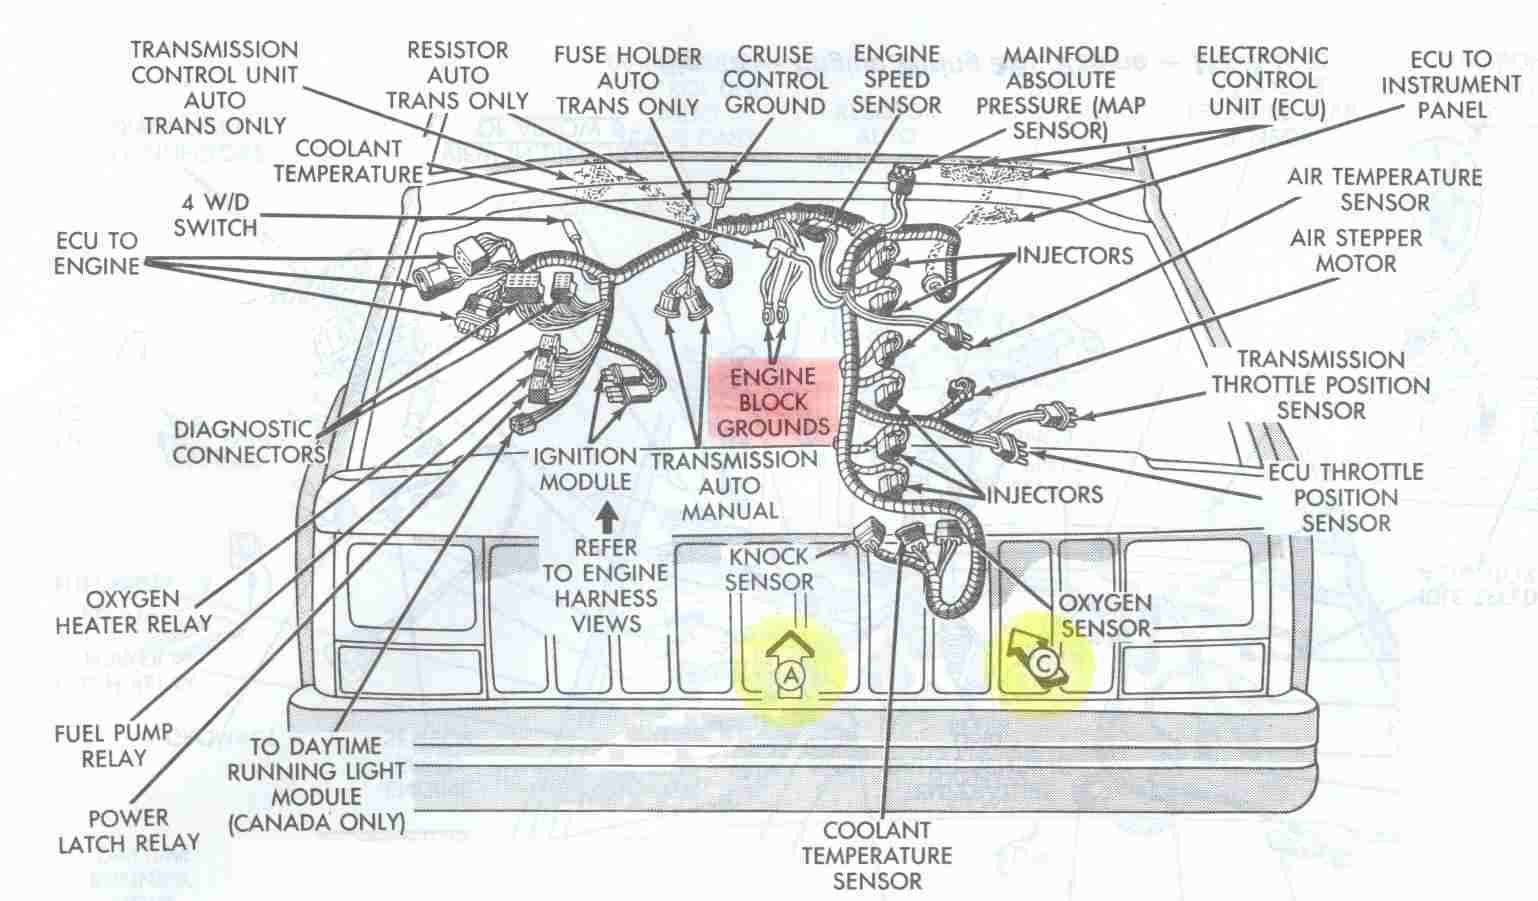 Engine Bay schematic showing major electrical ground points for 4.0L on controller cabinet, controller accessories, controller cable, controller computer diagram, controller battery,